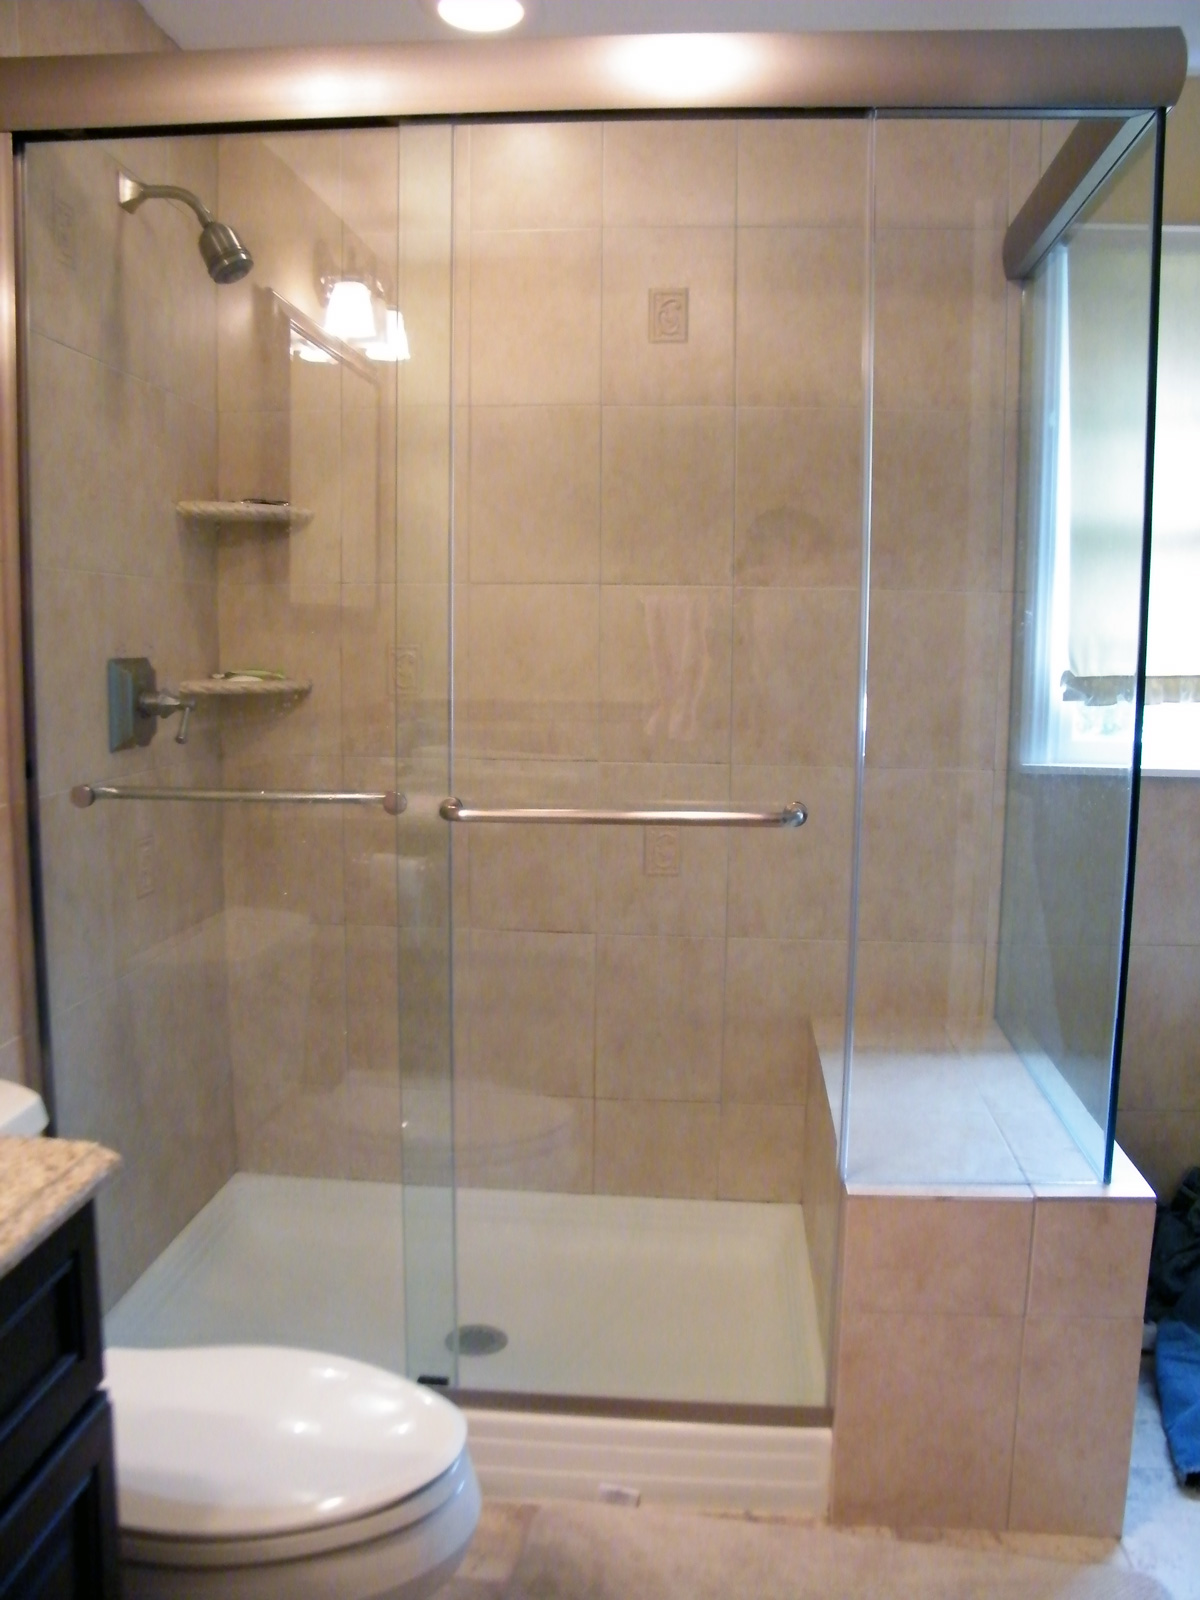 Bathroom: Menards Shower Doors | Sterling Shower Stalls | 32x32 Shower